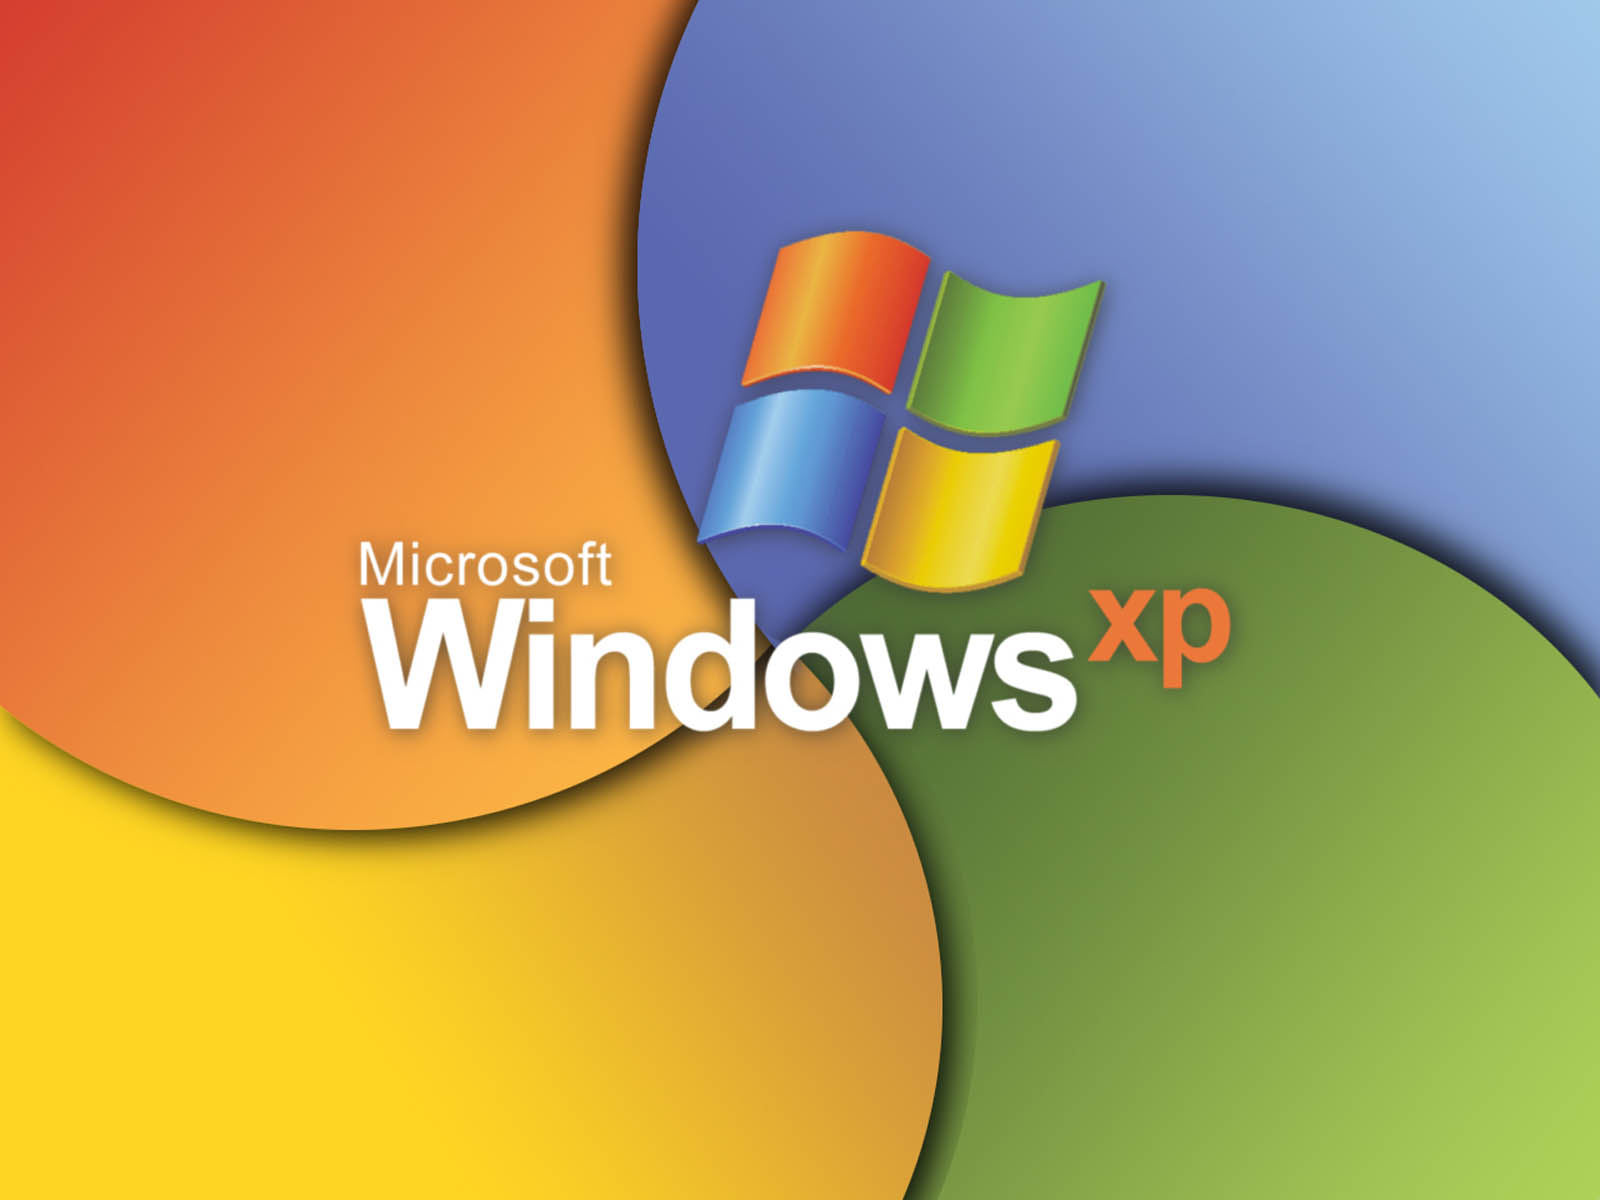 hd for free download windows xp wallpapers 16